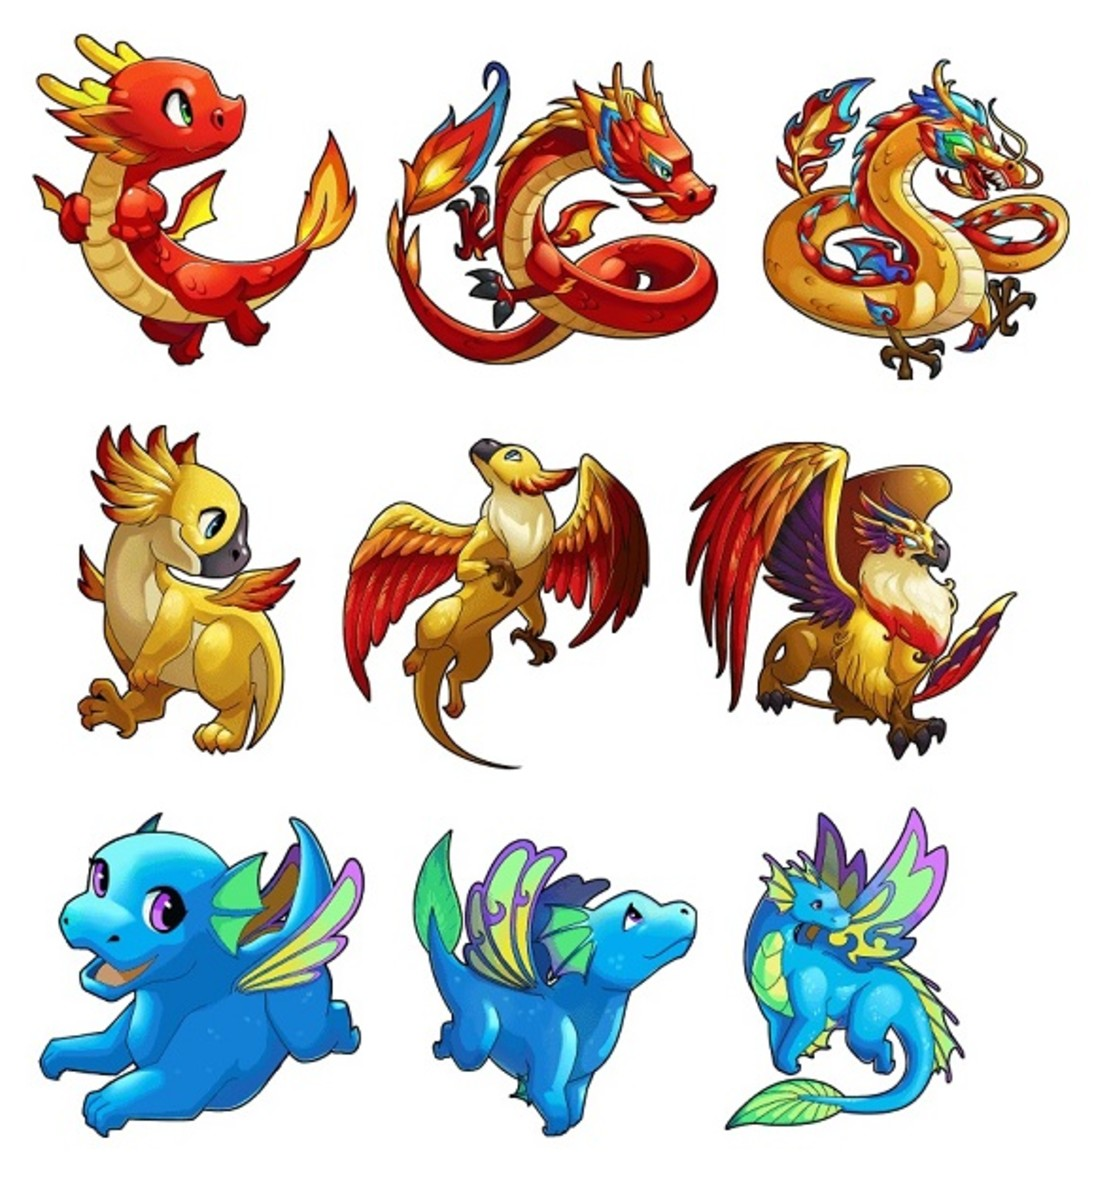 Your sidekick dragons can evolve and grow stronger.